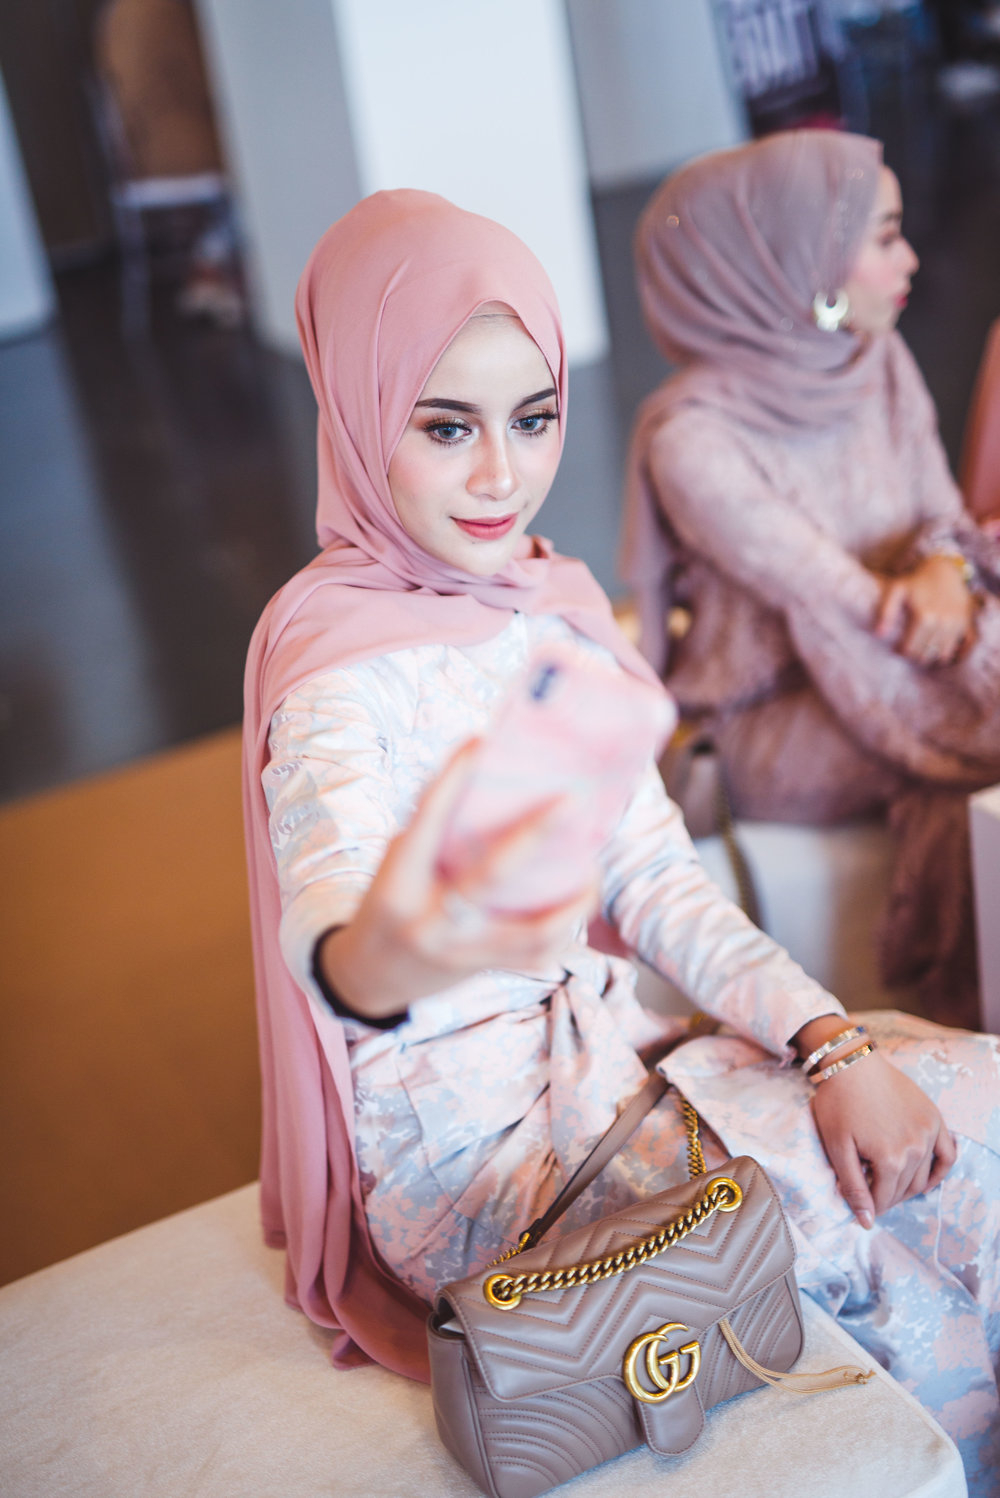 Zalora Raya 2018  - DDY_7454 - Photo by Saufi Nadzri.jpg